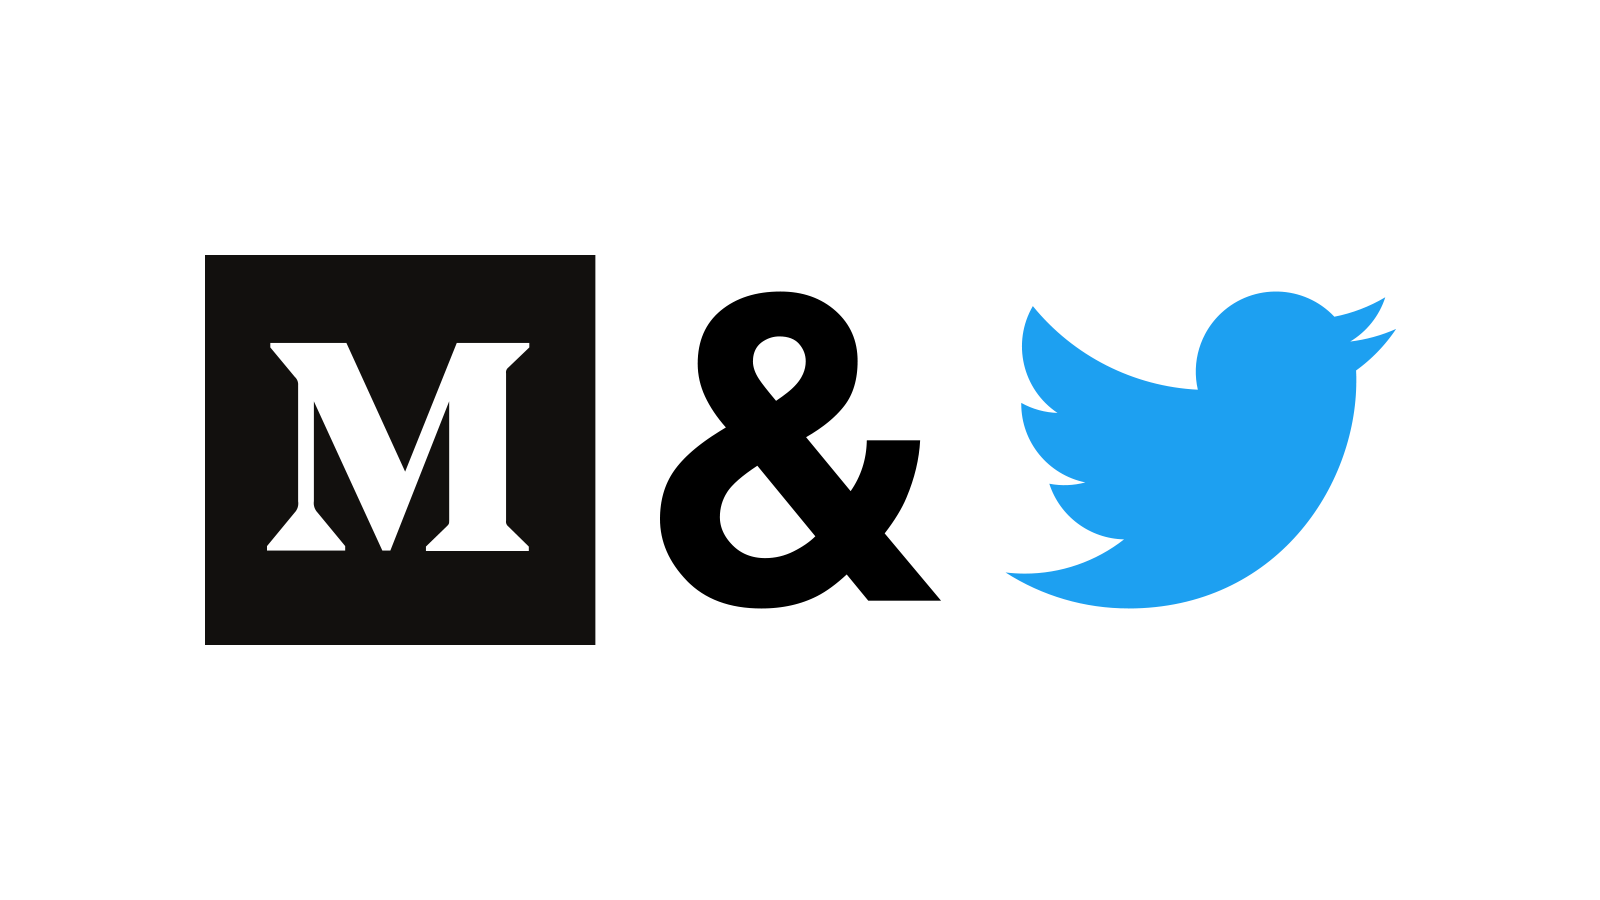 You can find my writing on Medium & Twitter